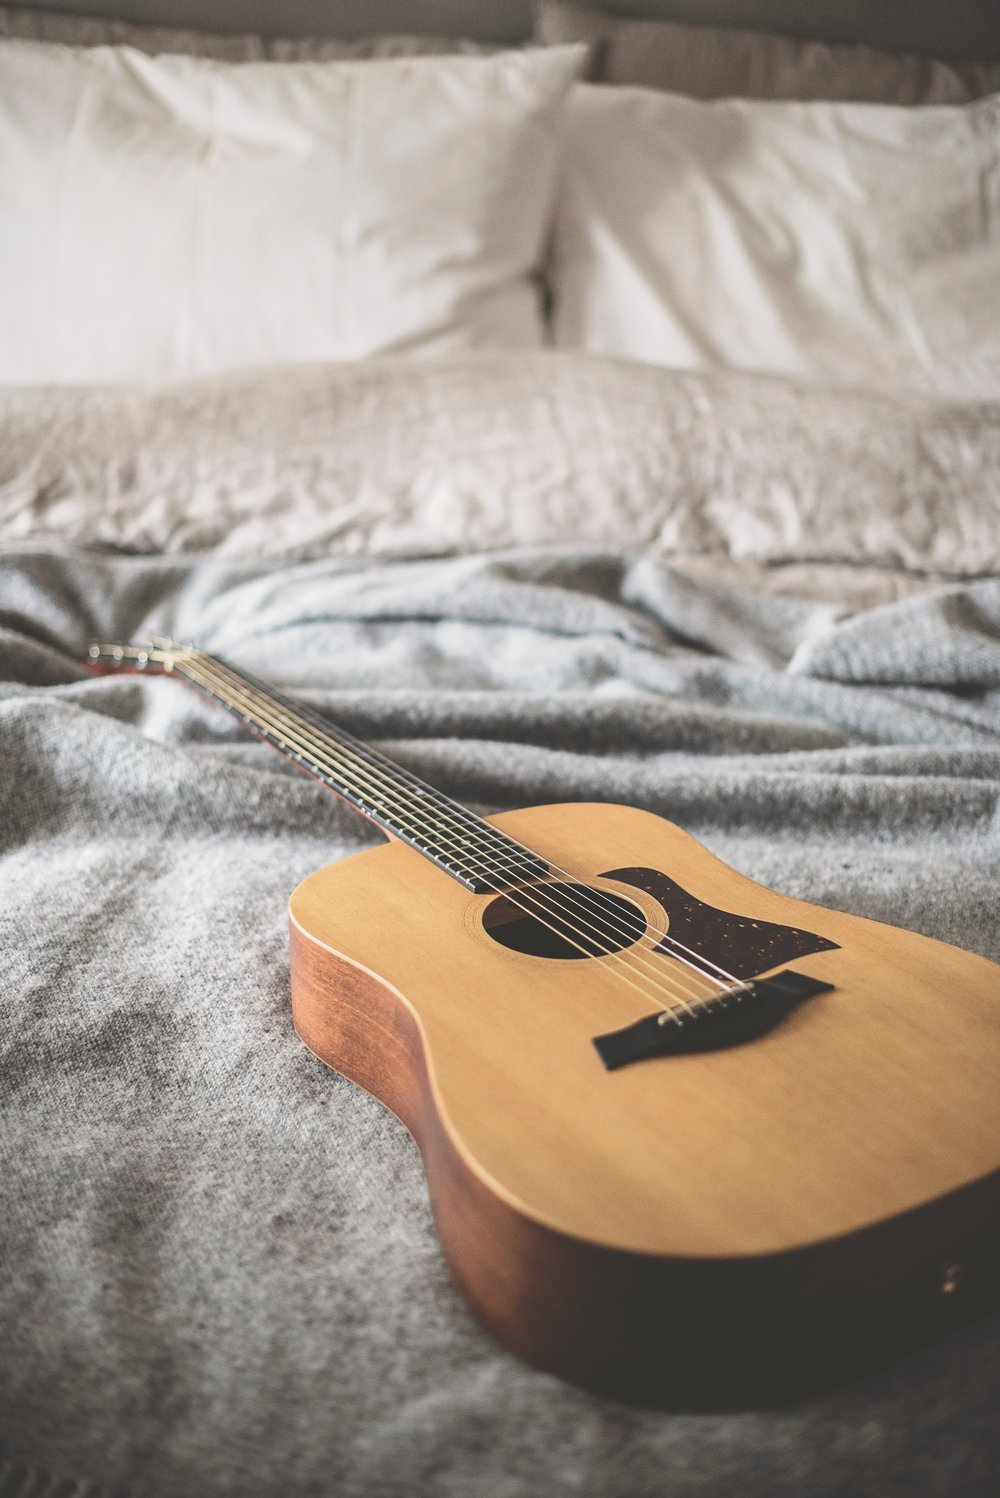 Taking guitar lessons as an adult and what it's like. CheersYears.com #adultguitarlessons